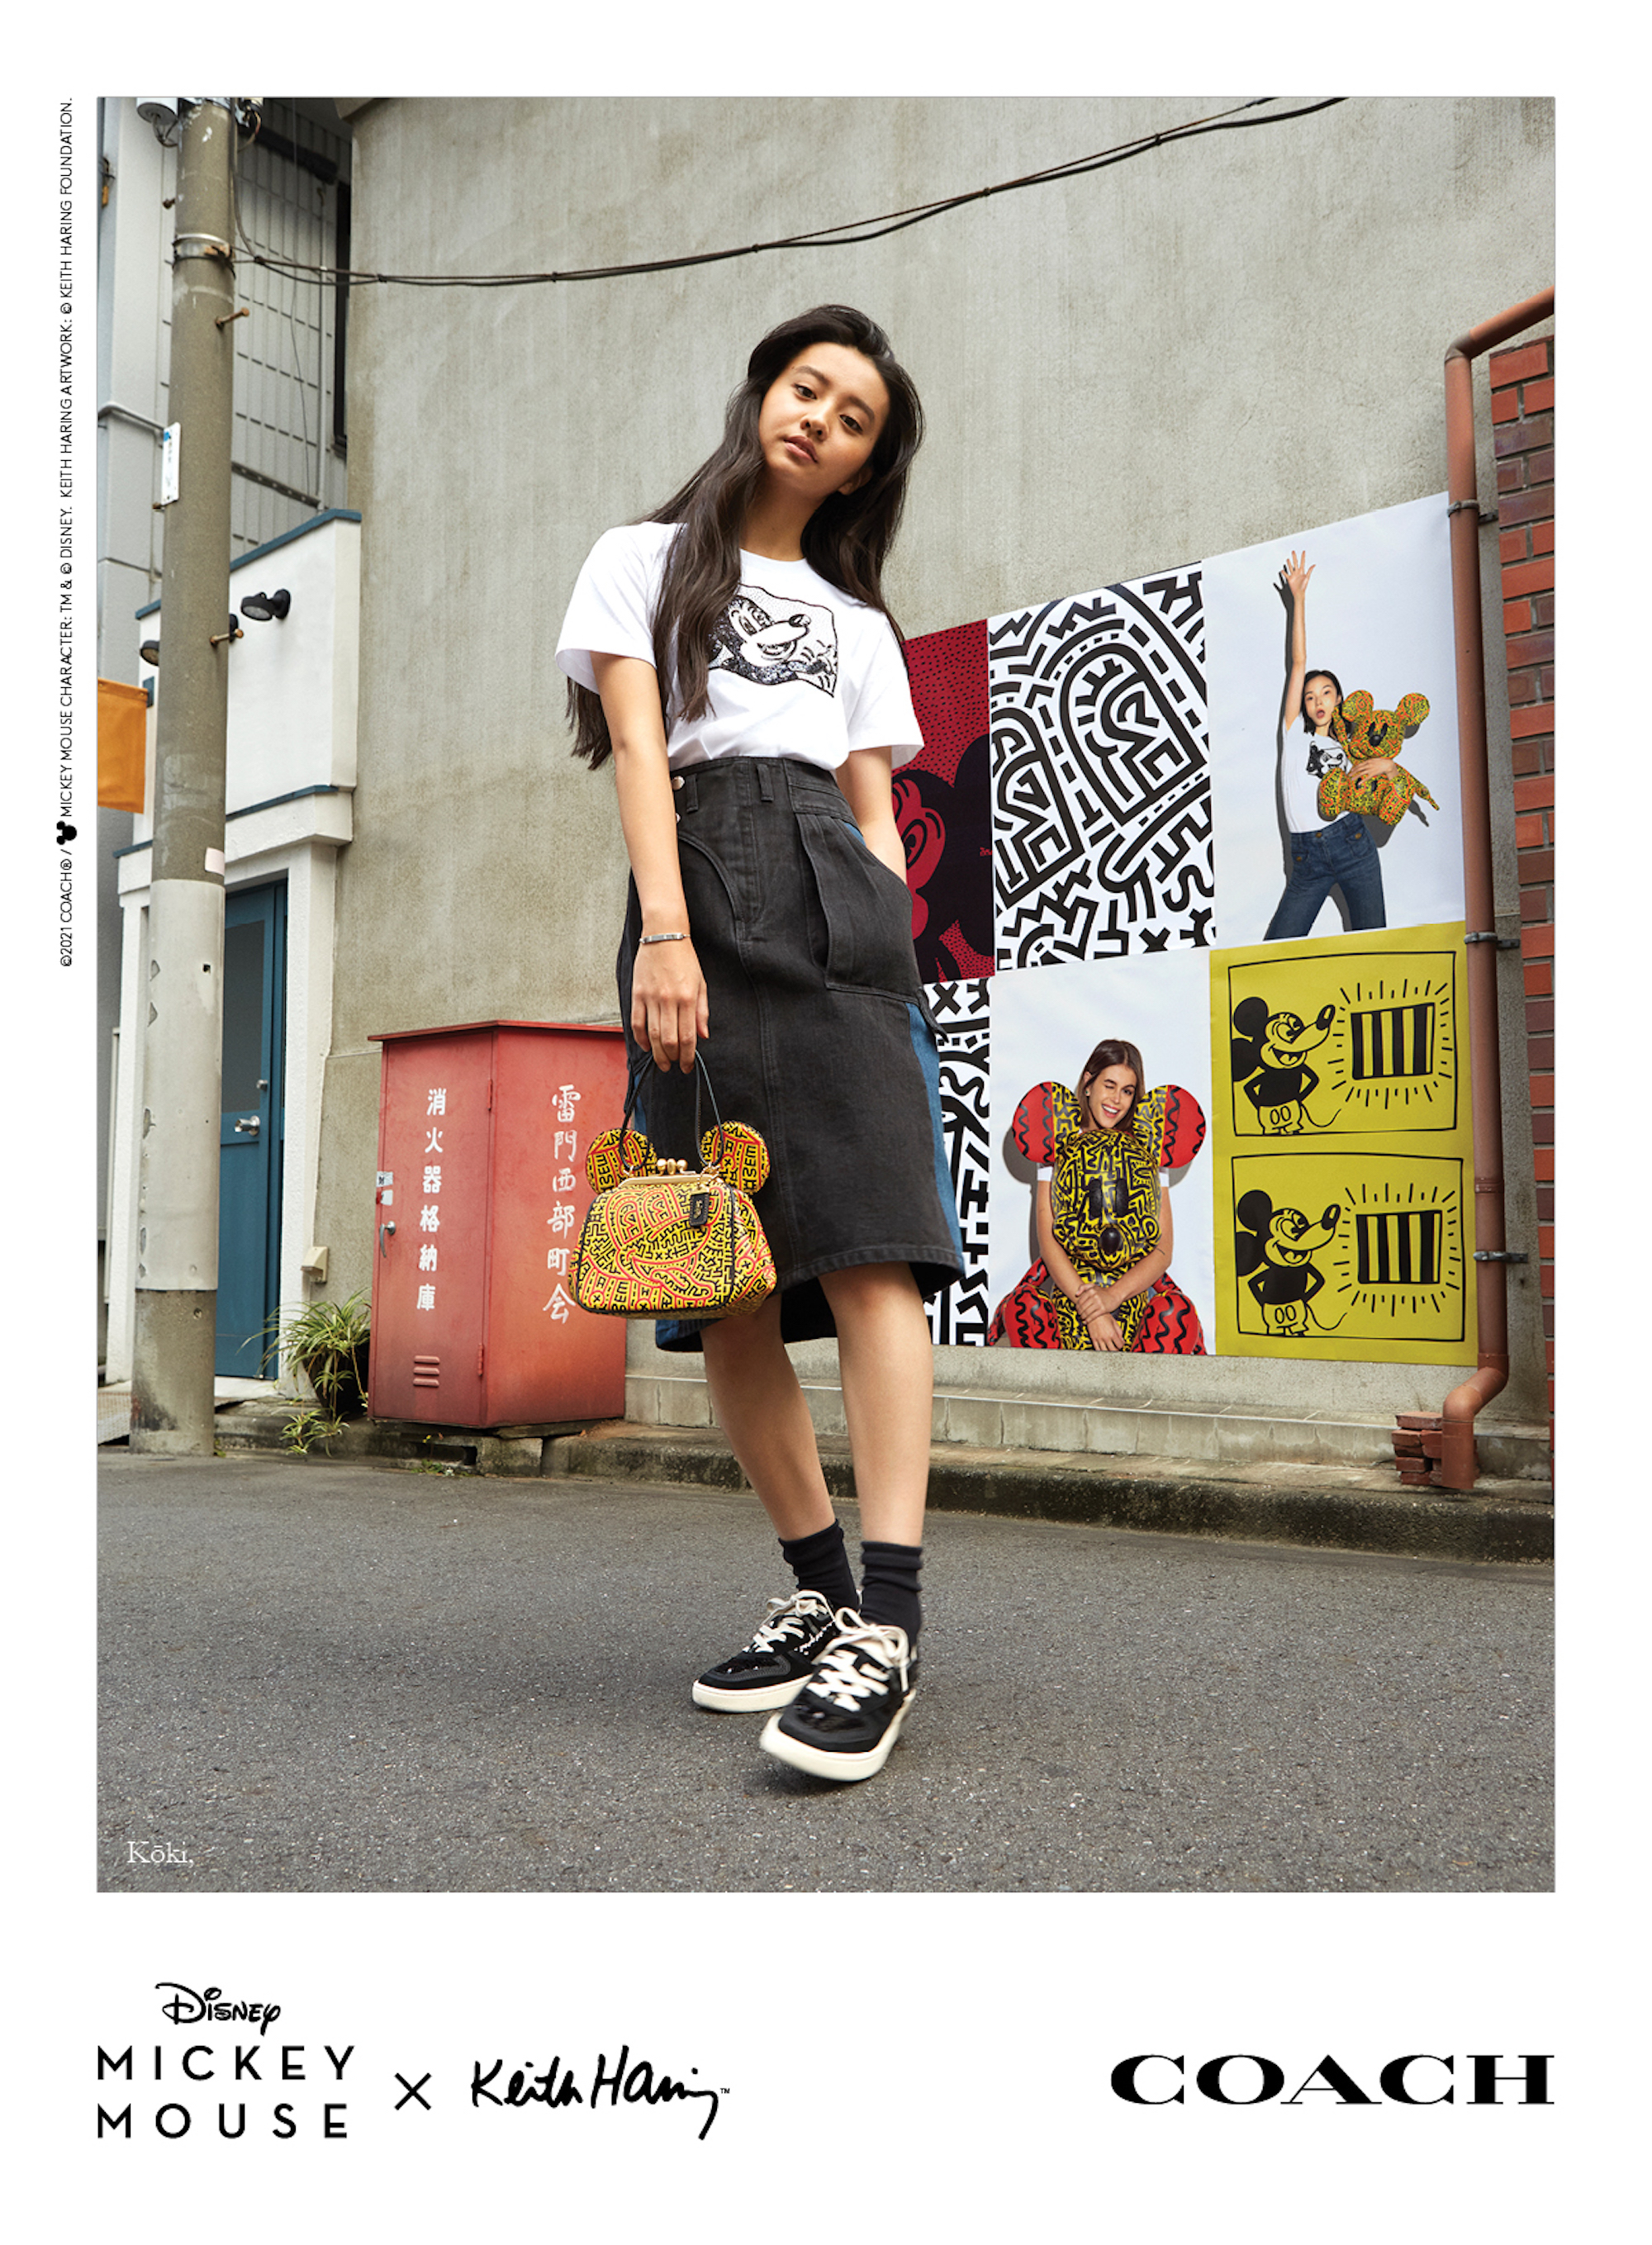 Mickey x Keith Haring for Coach Koki